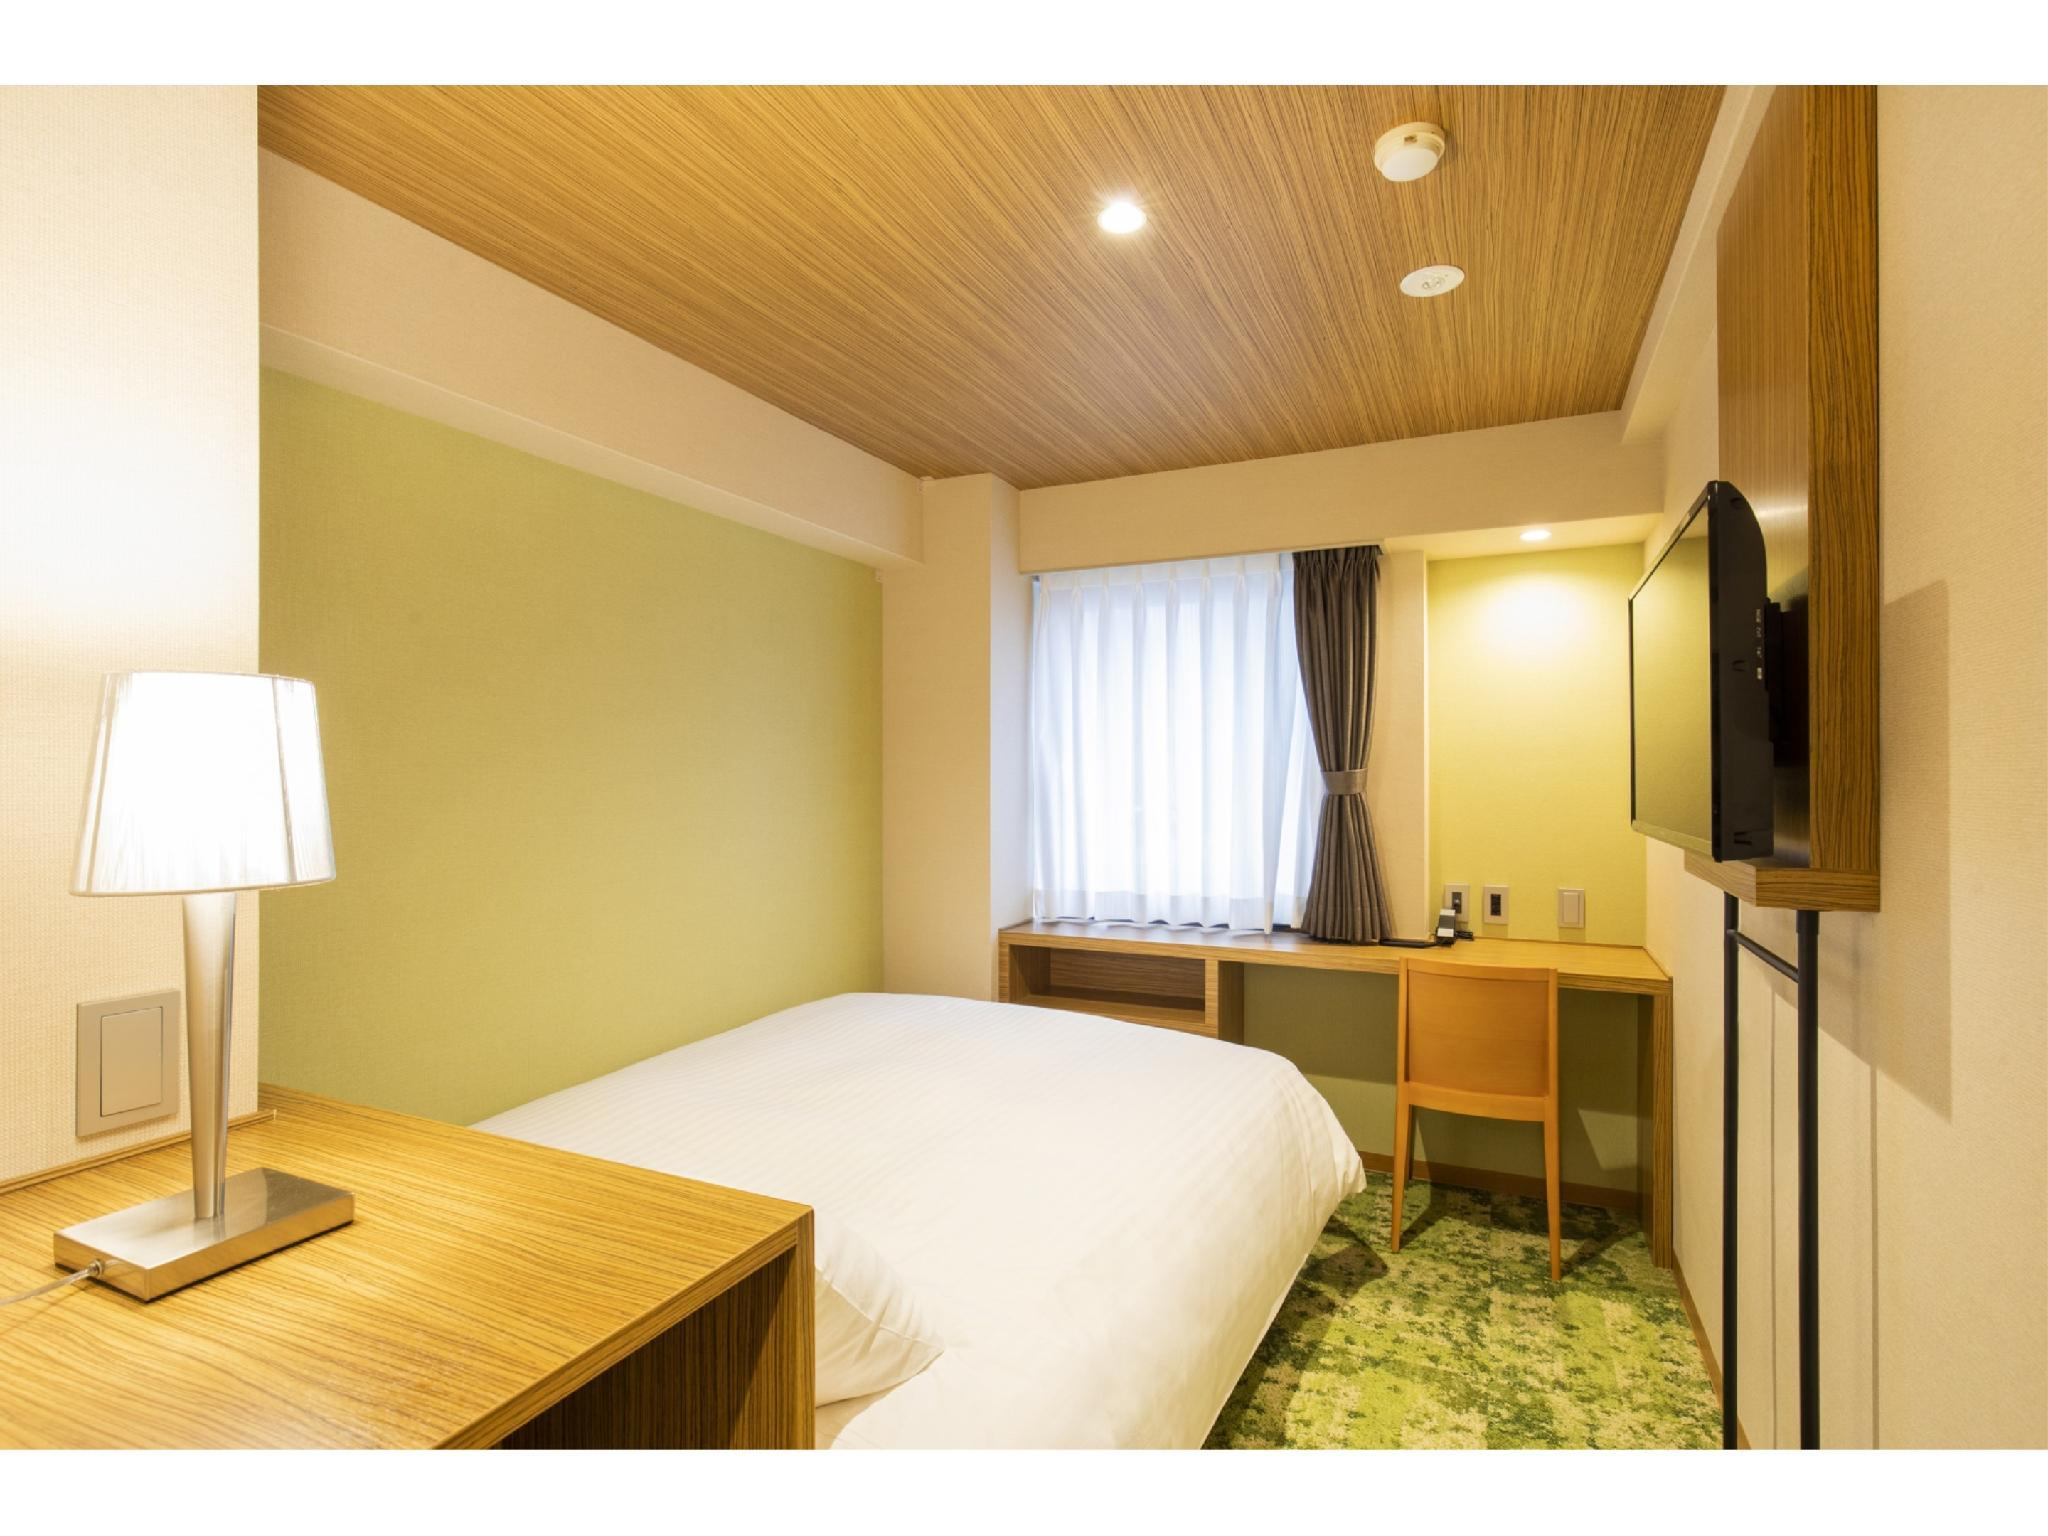 컴포트 싱글룸(리뉴얼) (Comfort Single Room *Refurbished room)